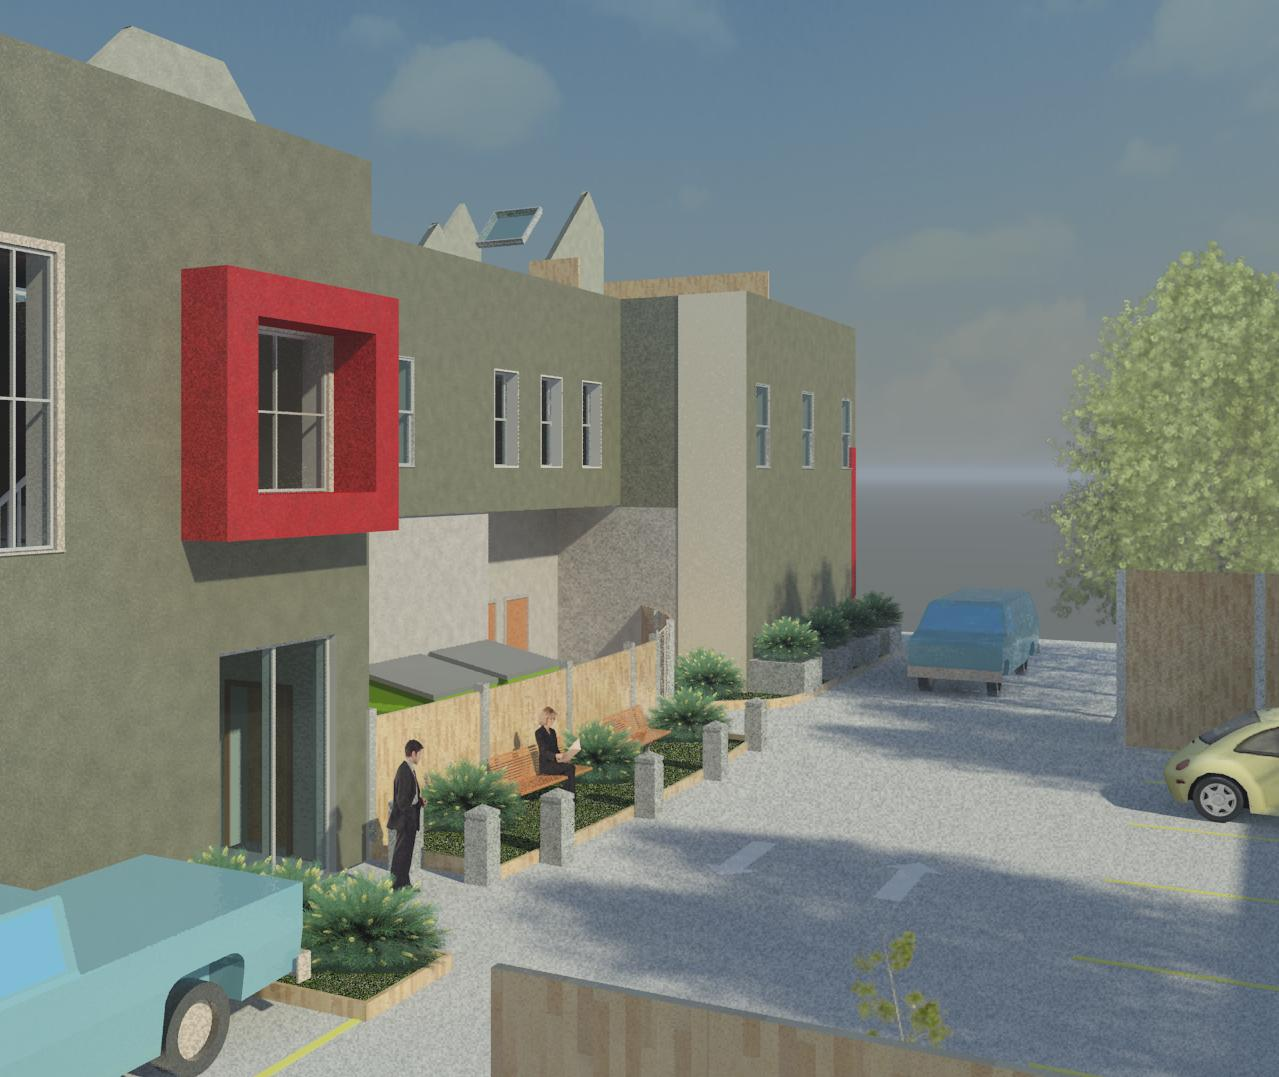 Lakeshore Commercial Space with 2nd Floor Residential Apartments Rear.jpg